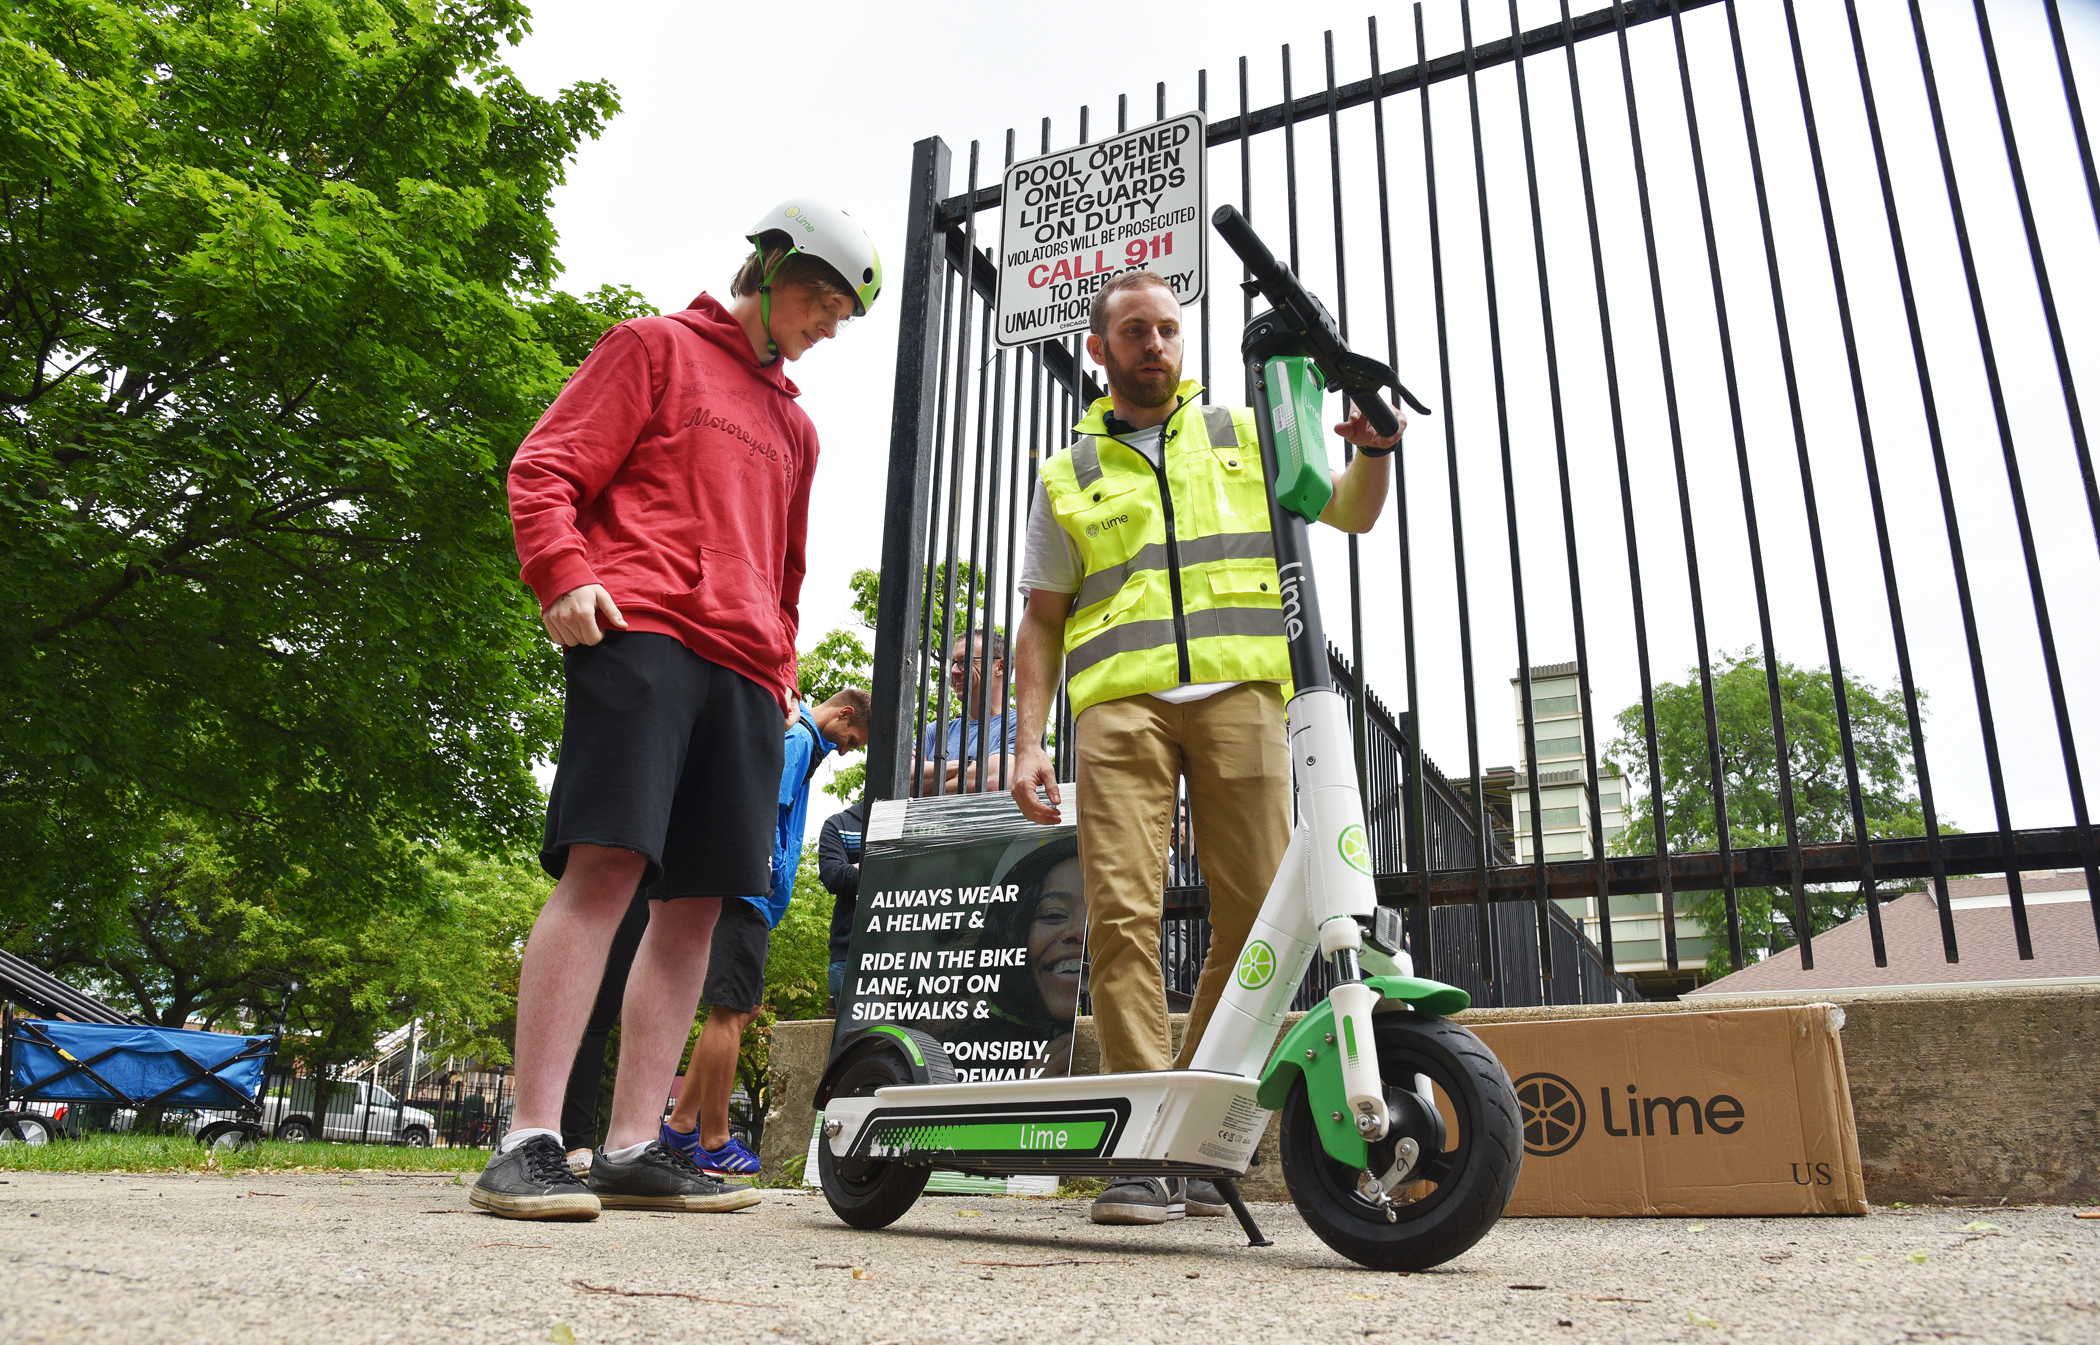 Daniel Chovanec, 21, of Garfield Ridge (left) is shown in June on the day the city's pilot program for dockless e-scooters was launched.